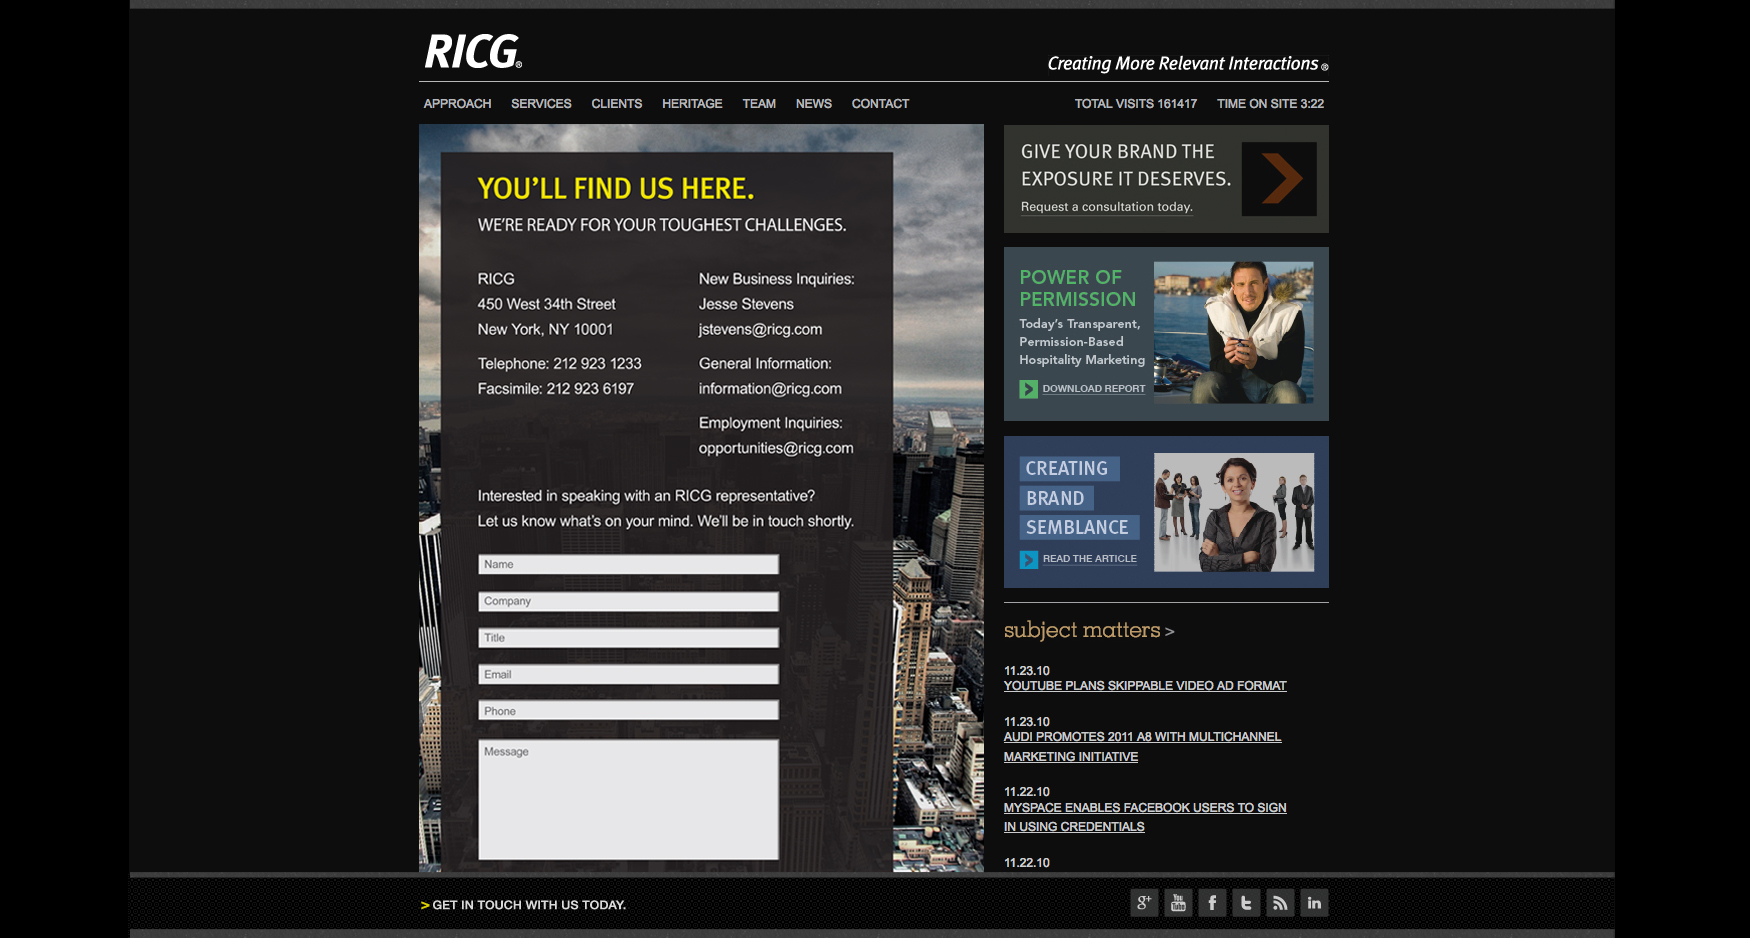 contact1 - RICG - CORPORATE WEBSITE